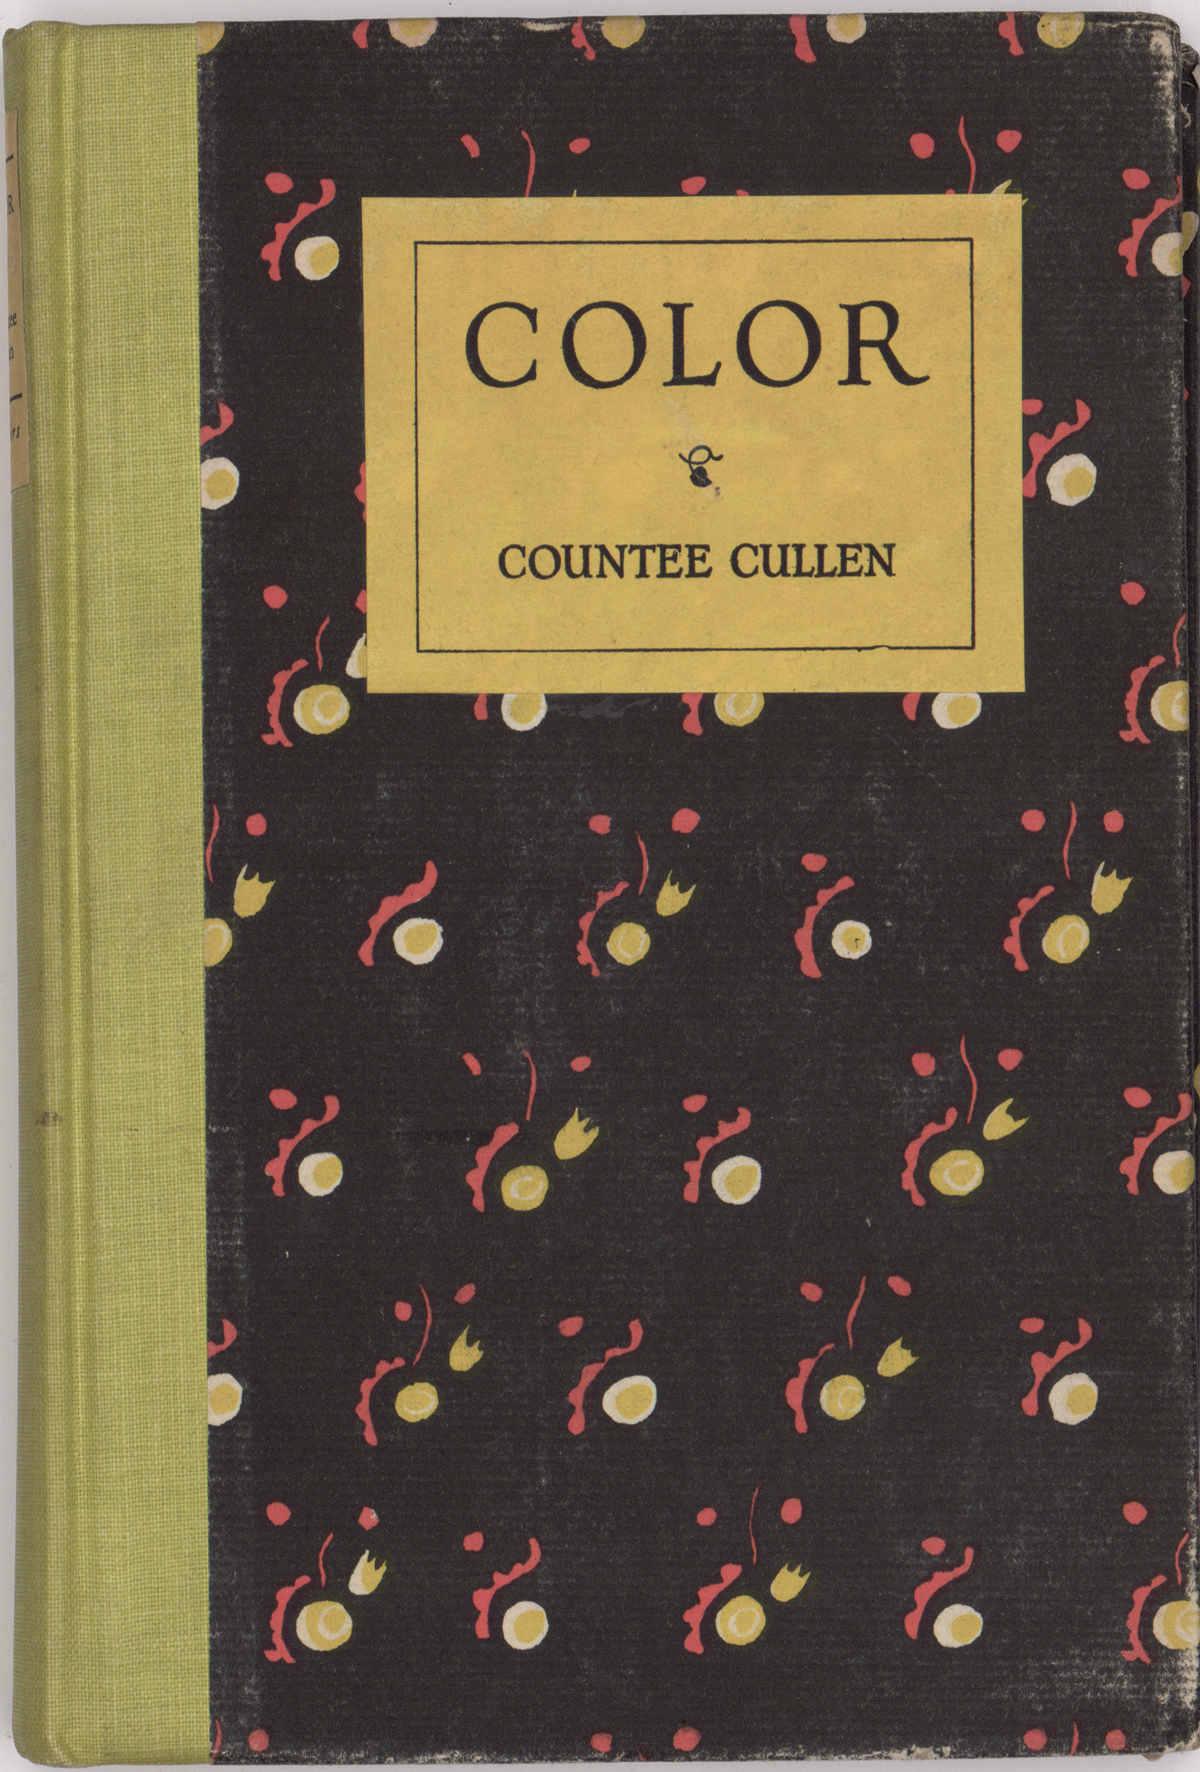 Countée Cullen's first book of poetry, Color (Harper & Brothers, 1925).